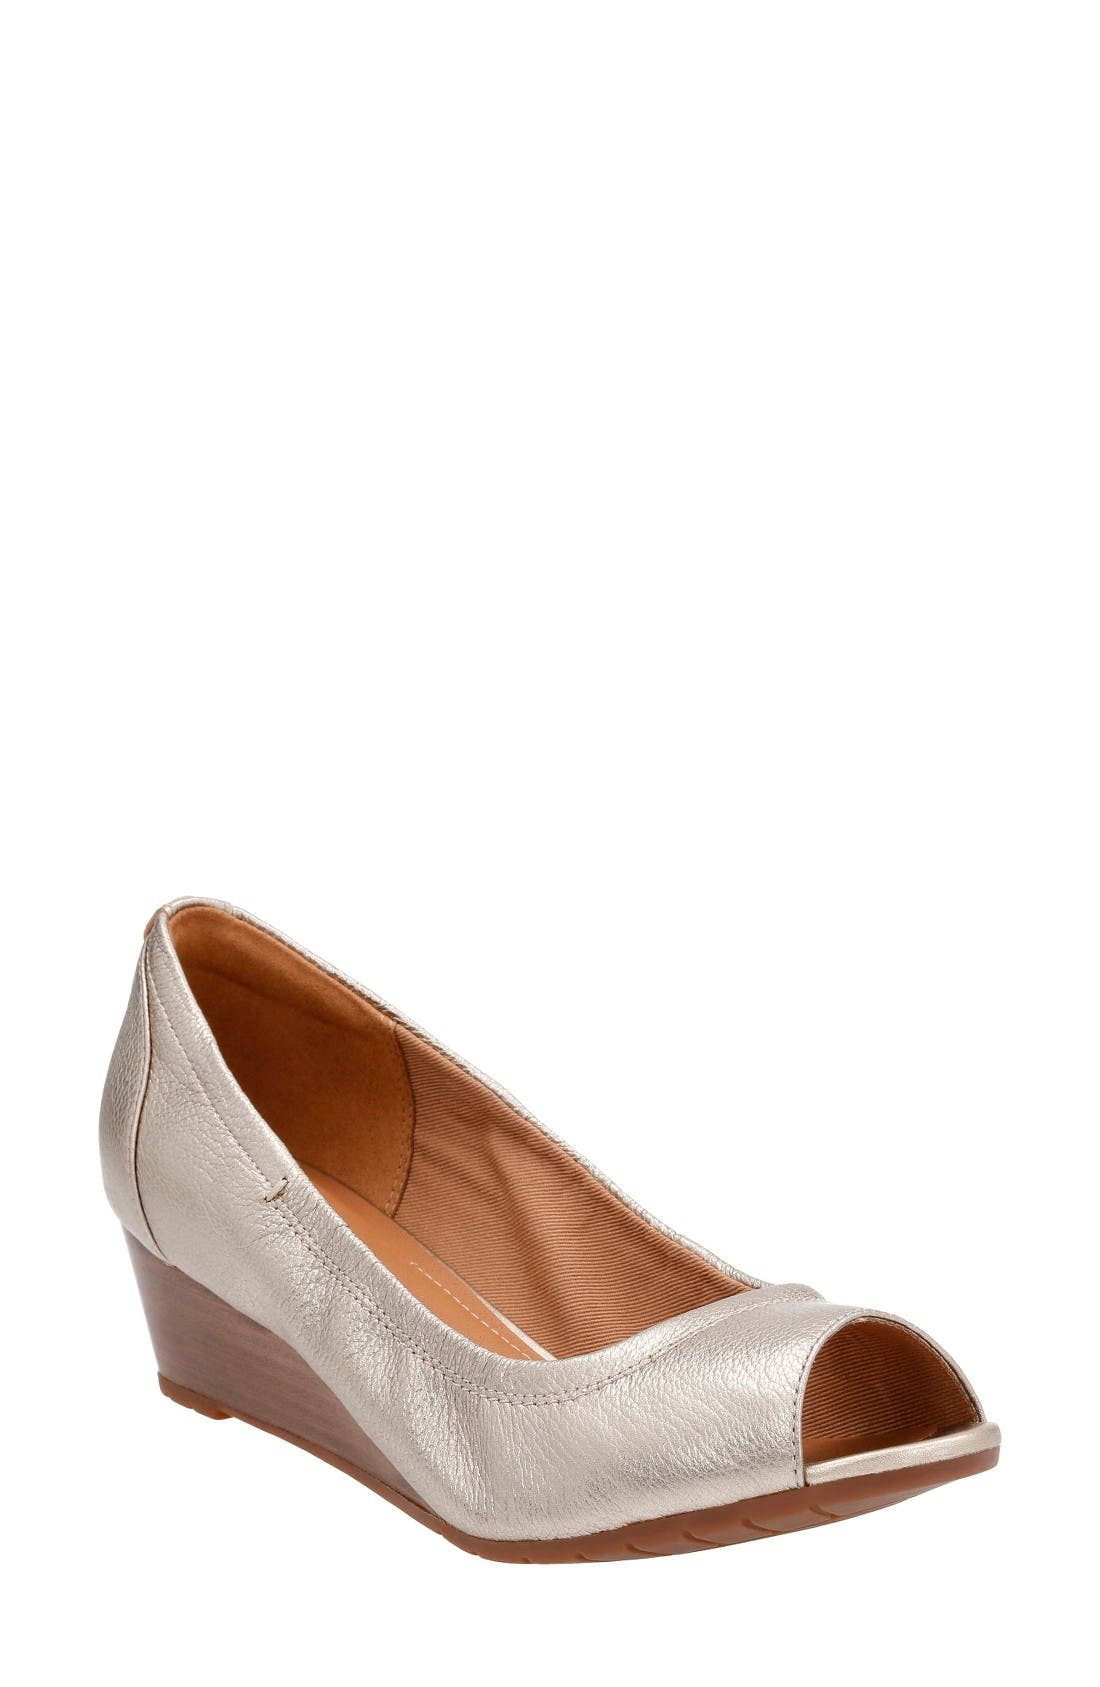 Clarks® Vendra Daisy Open Toe Wedge (Women)